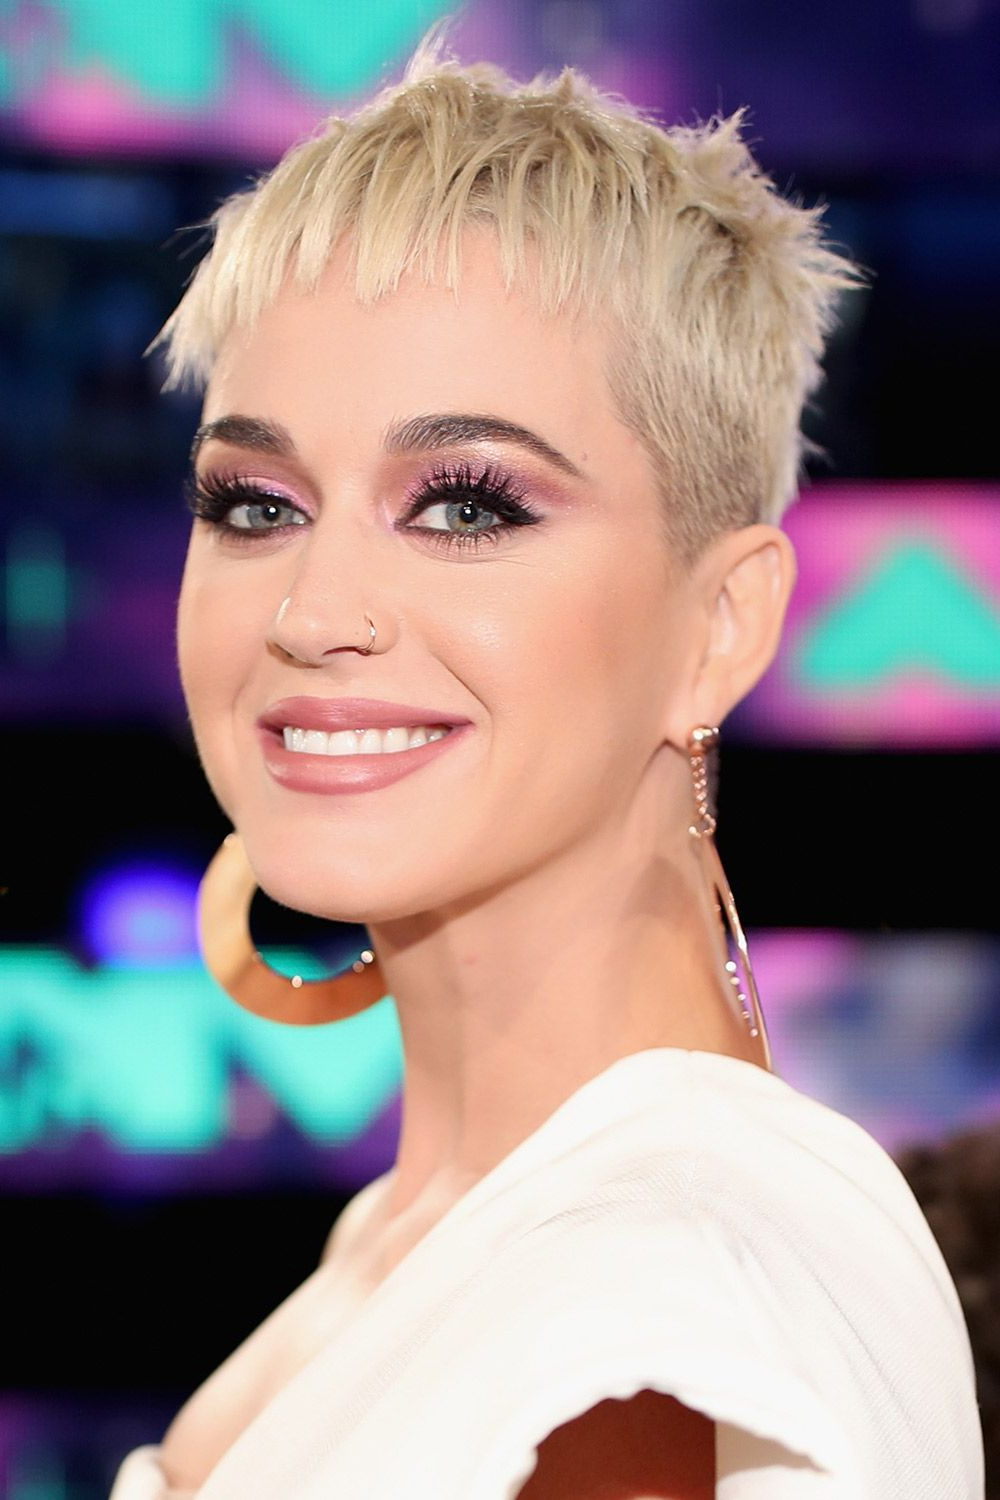 65 Best Short Hairstyles, Haircuts, And Short Hair Ideas For 2018 Throughout Short Haircuts With One Side Longer Than The Other (Gallery 20 of 25)